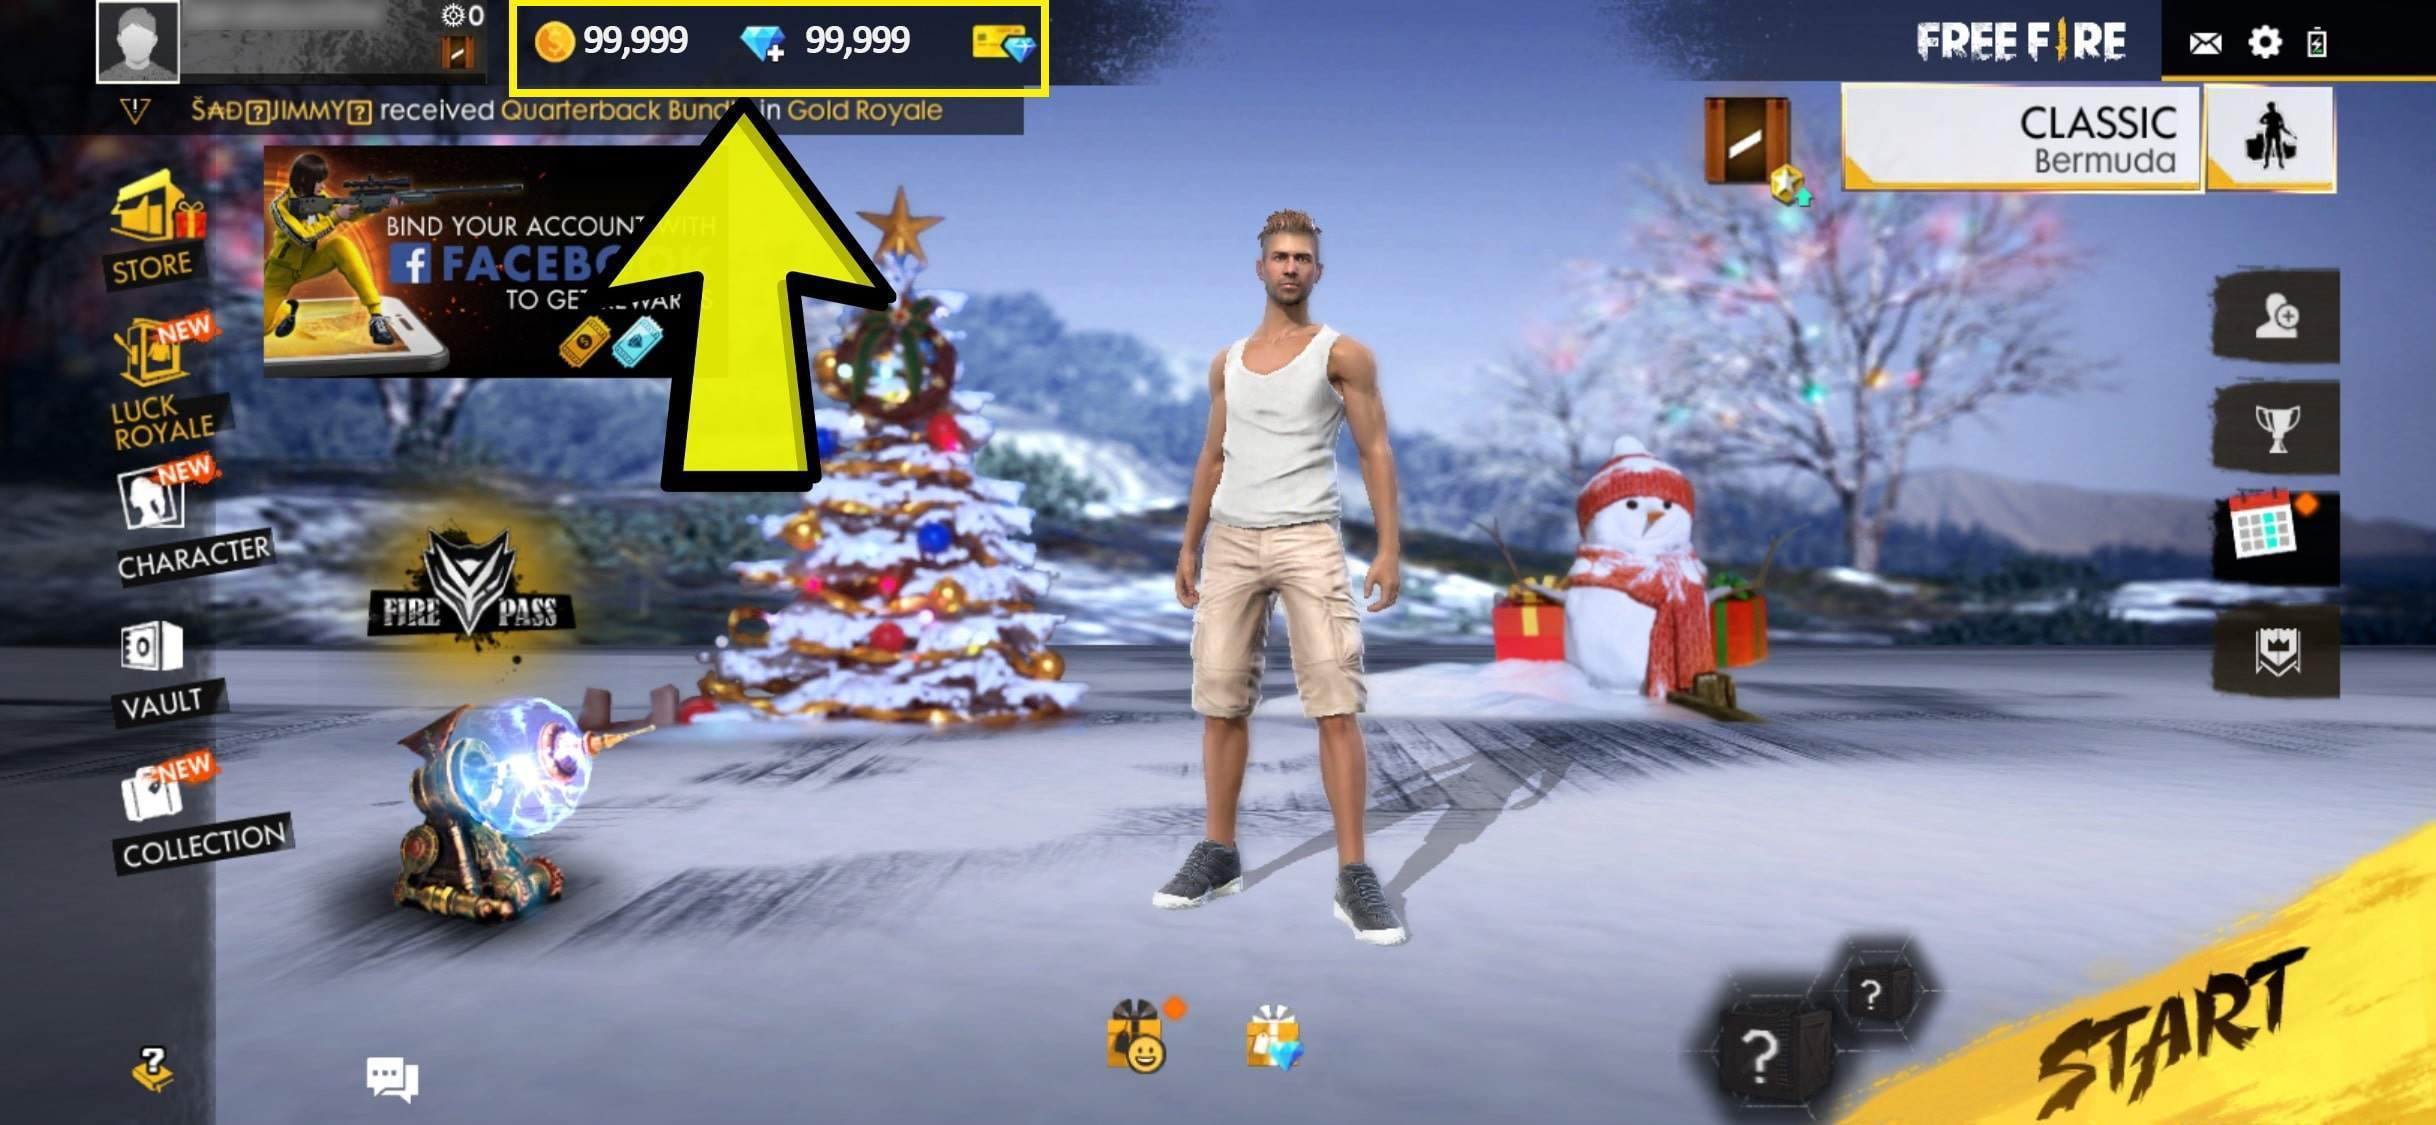 Claim Freefire Unlimited Coins and Diamonds For Free! 100% Working [November 2020]